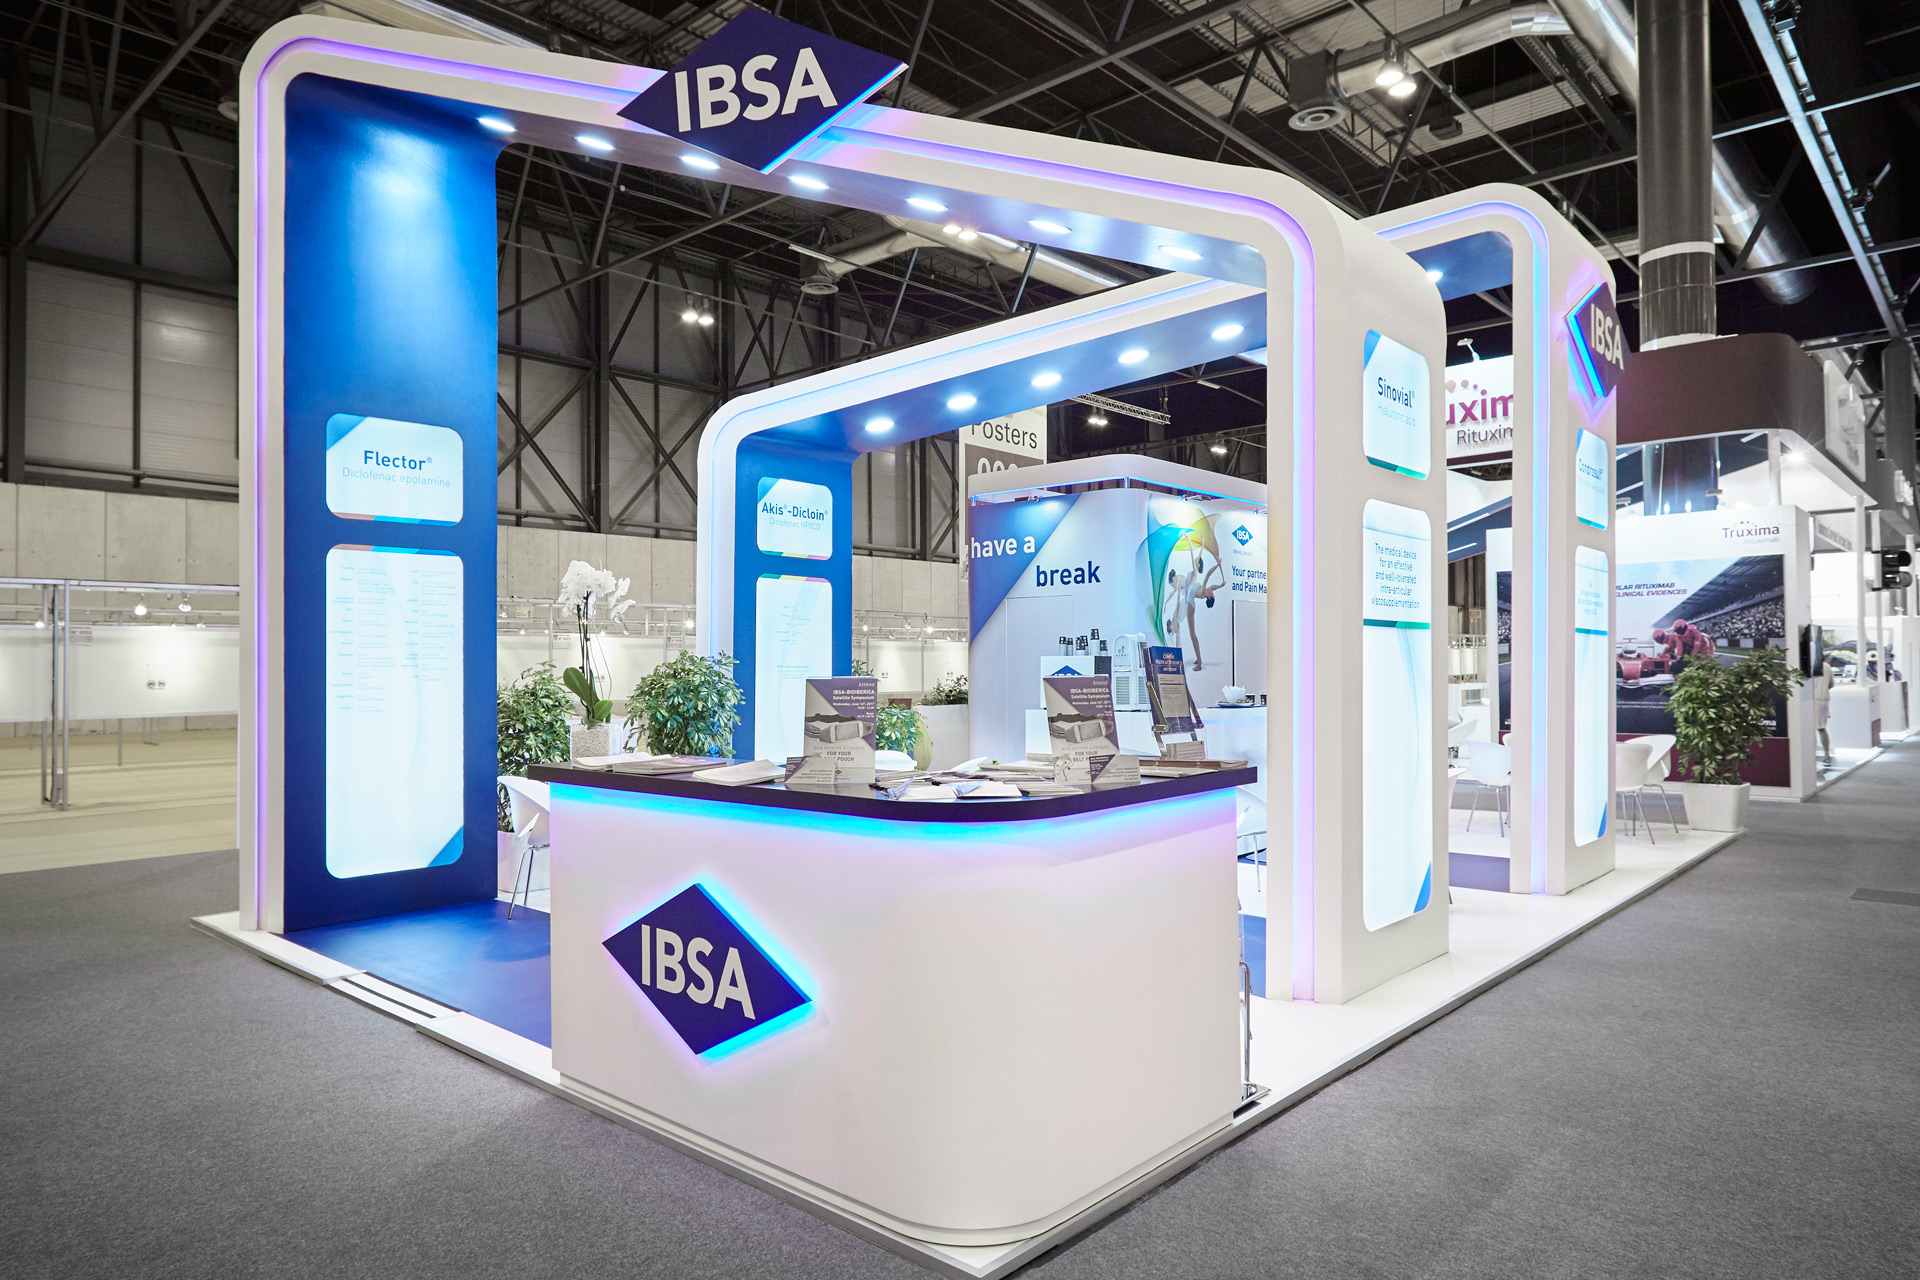 Expo Exhibition Stands Jojo : Ibsa eular madrid pro expo exhibition stand